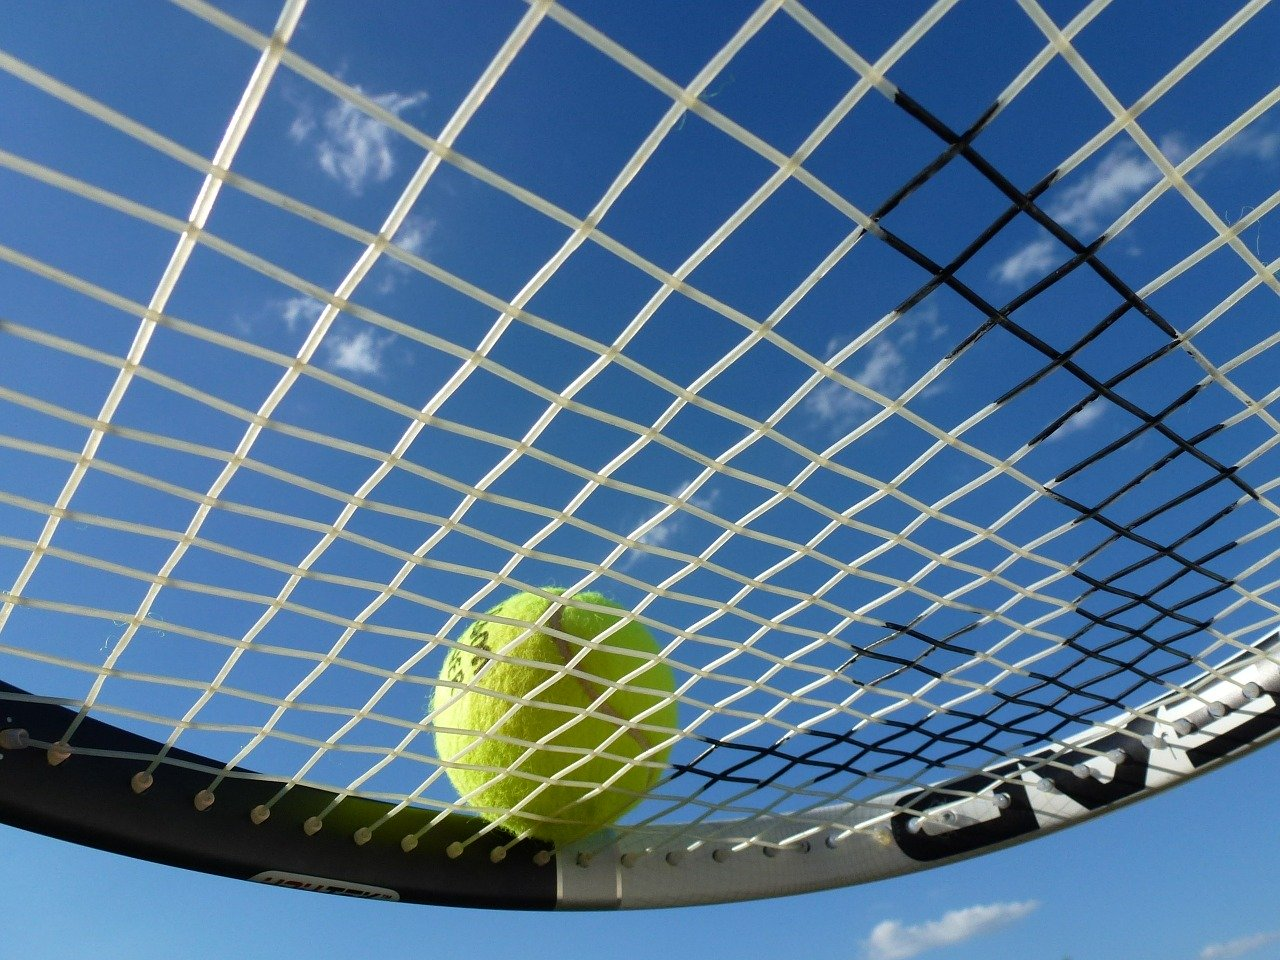 tennis, tennis ball, tennis racket